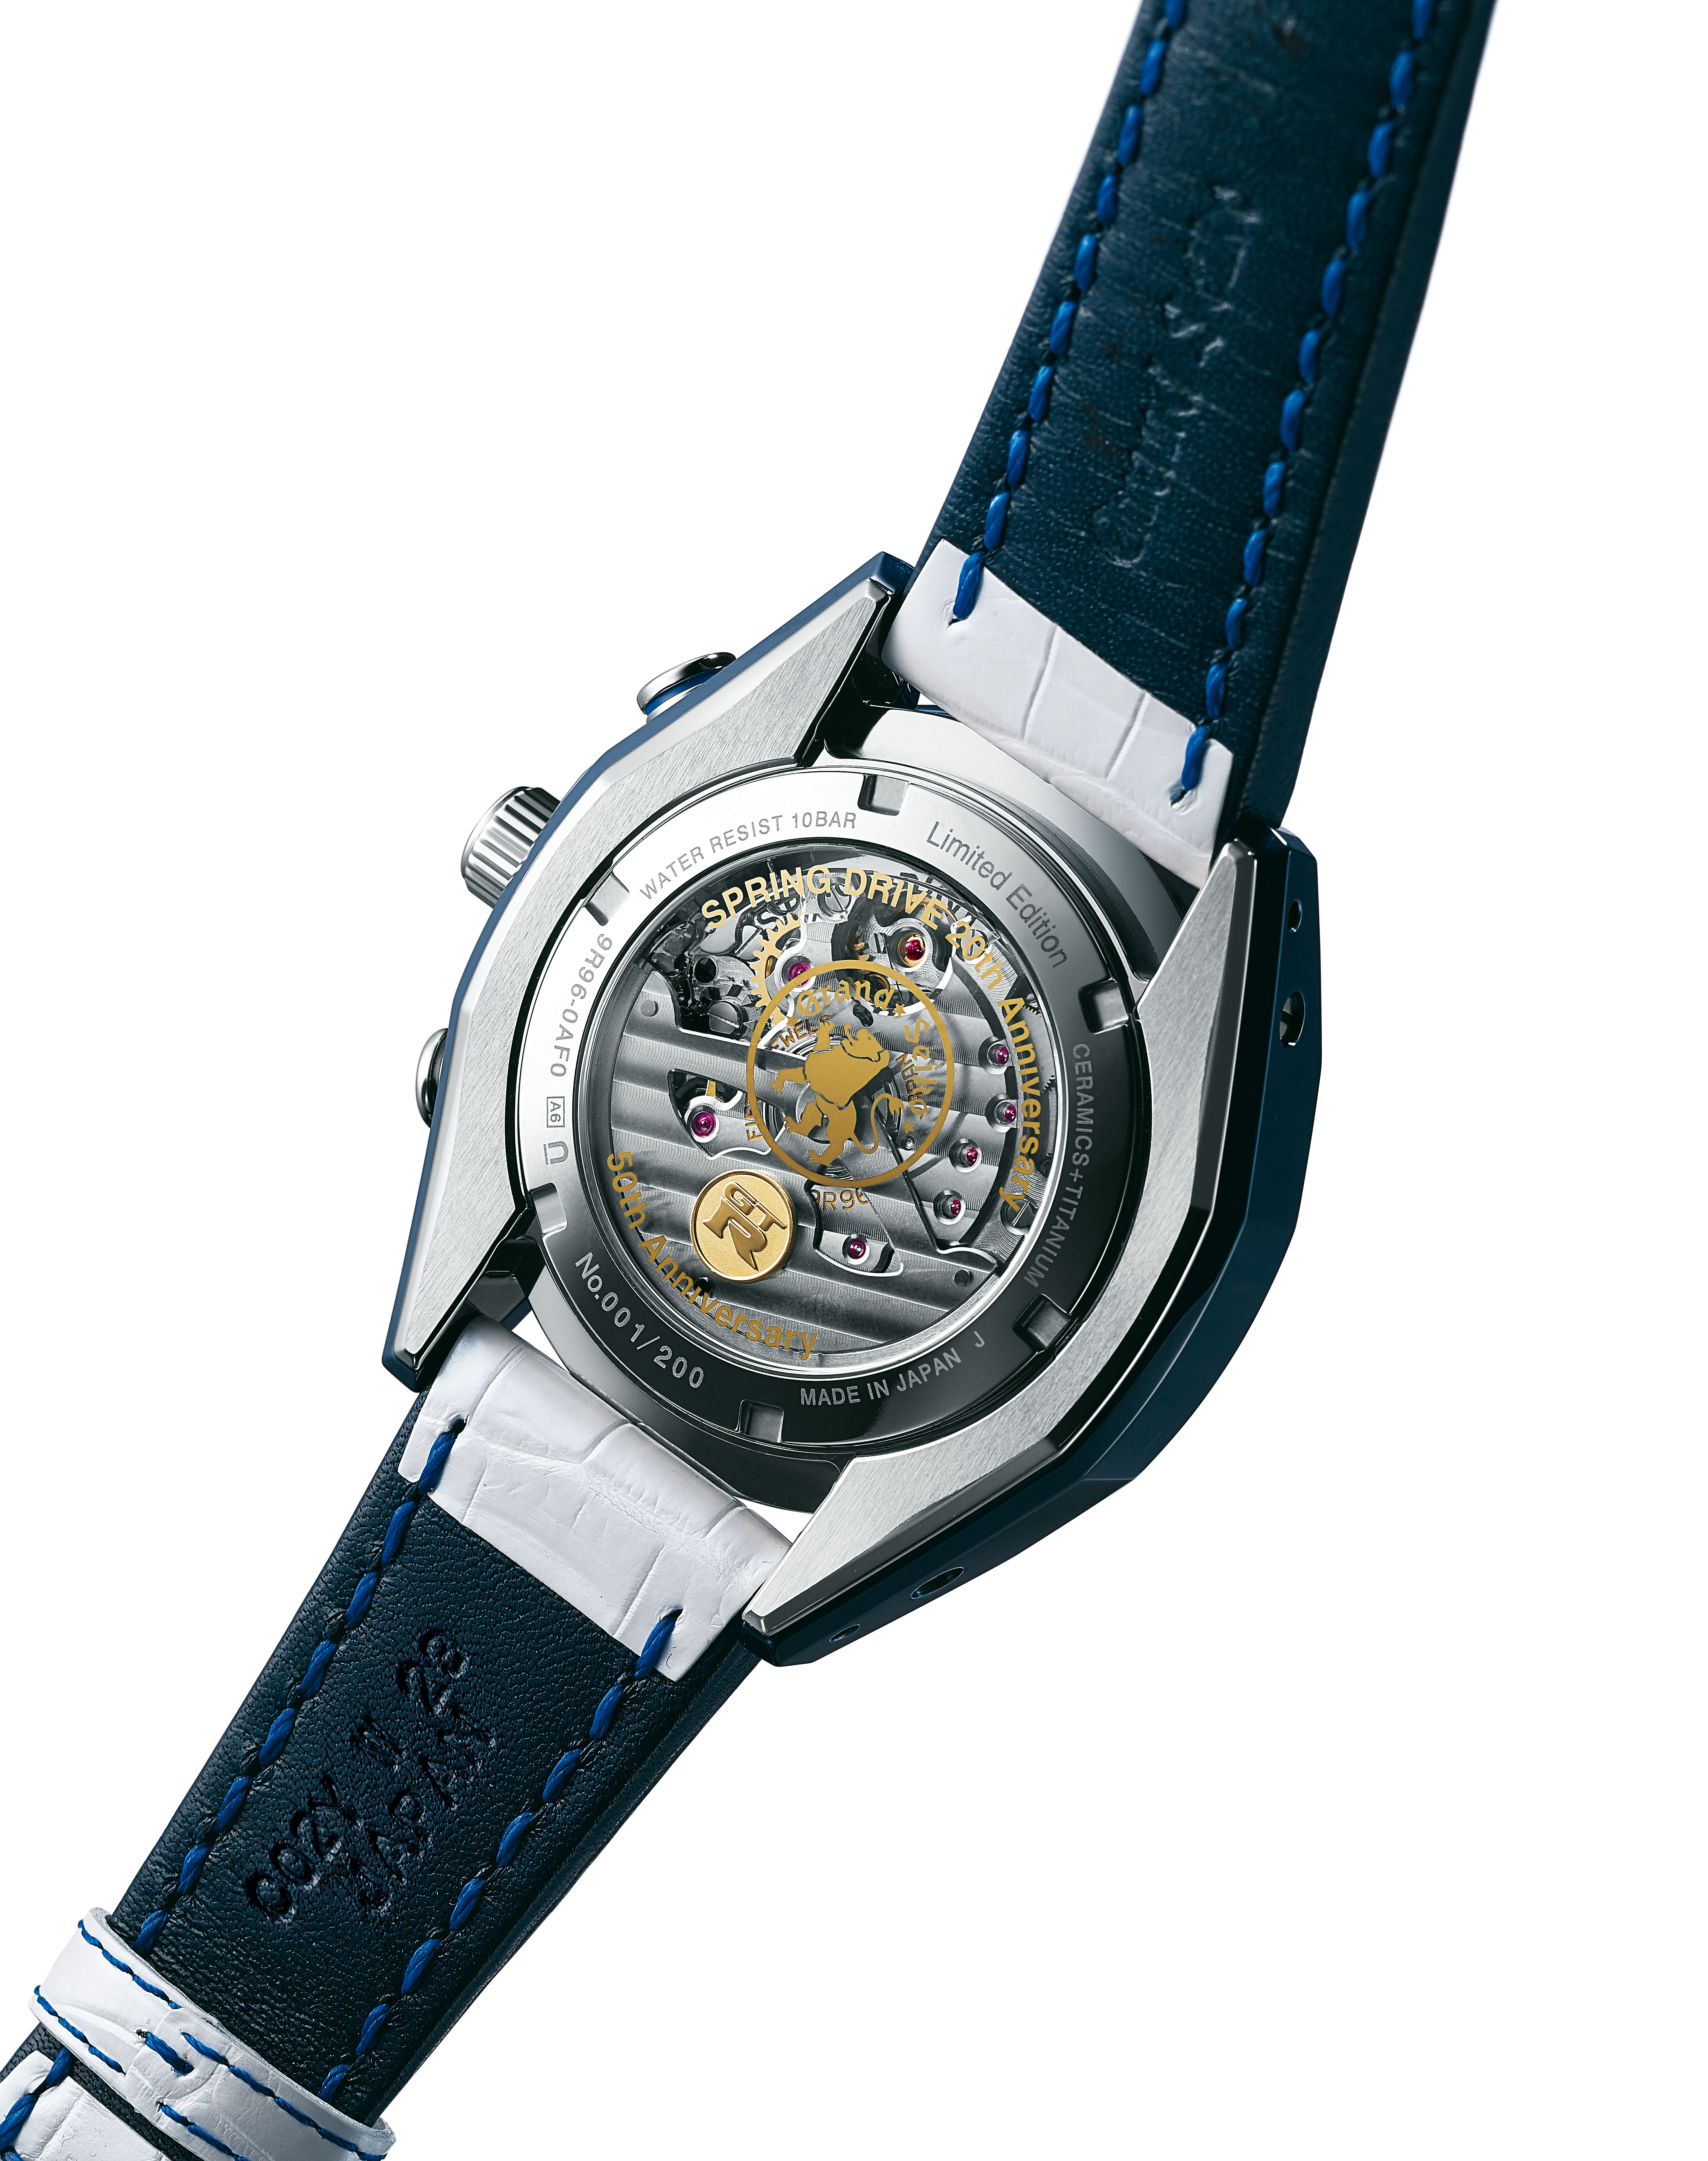 Nissan GT-R, Limited-edition watch celebrates 50 years of Nissan GT-R, ClassicCars.com Journal